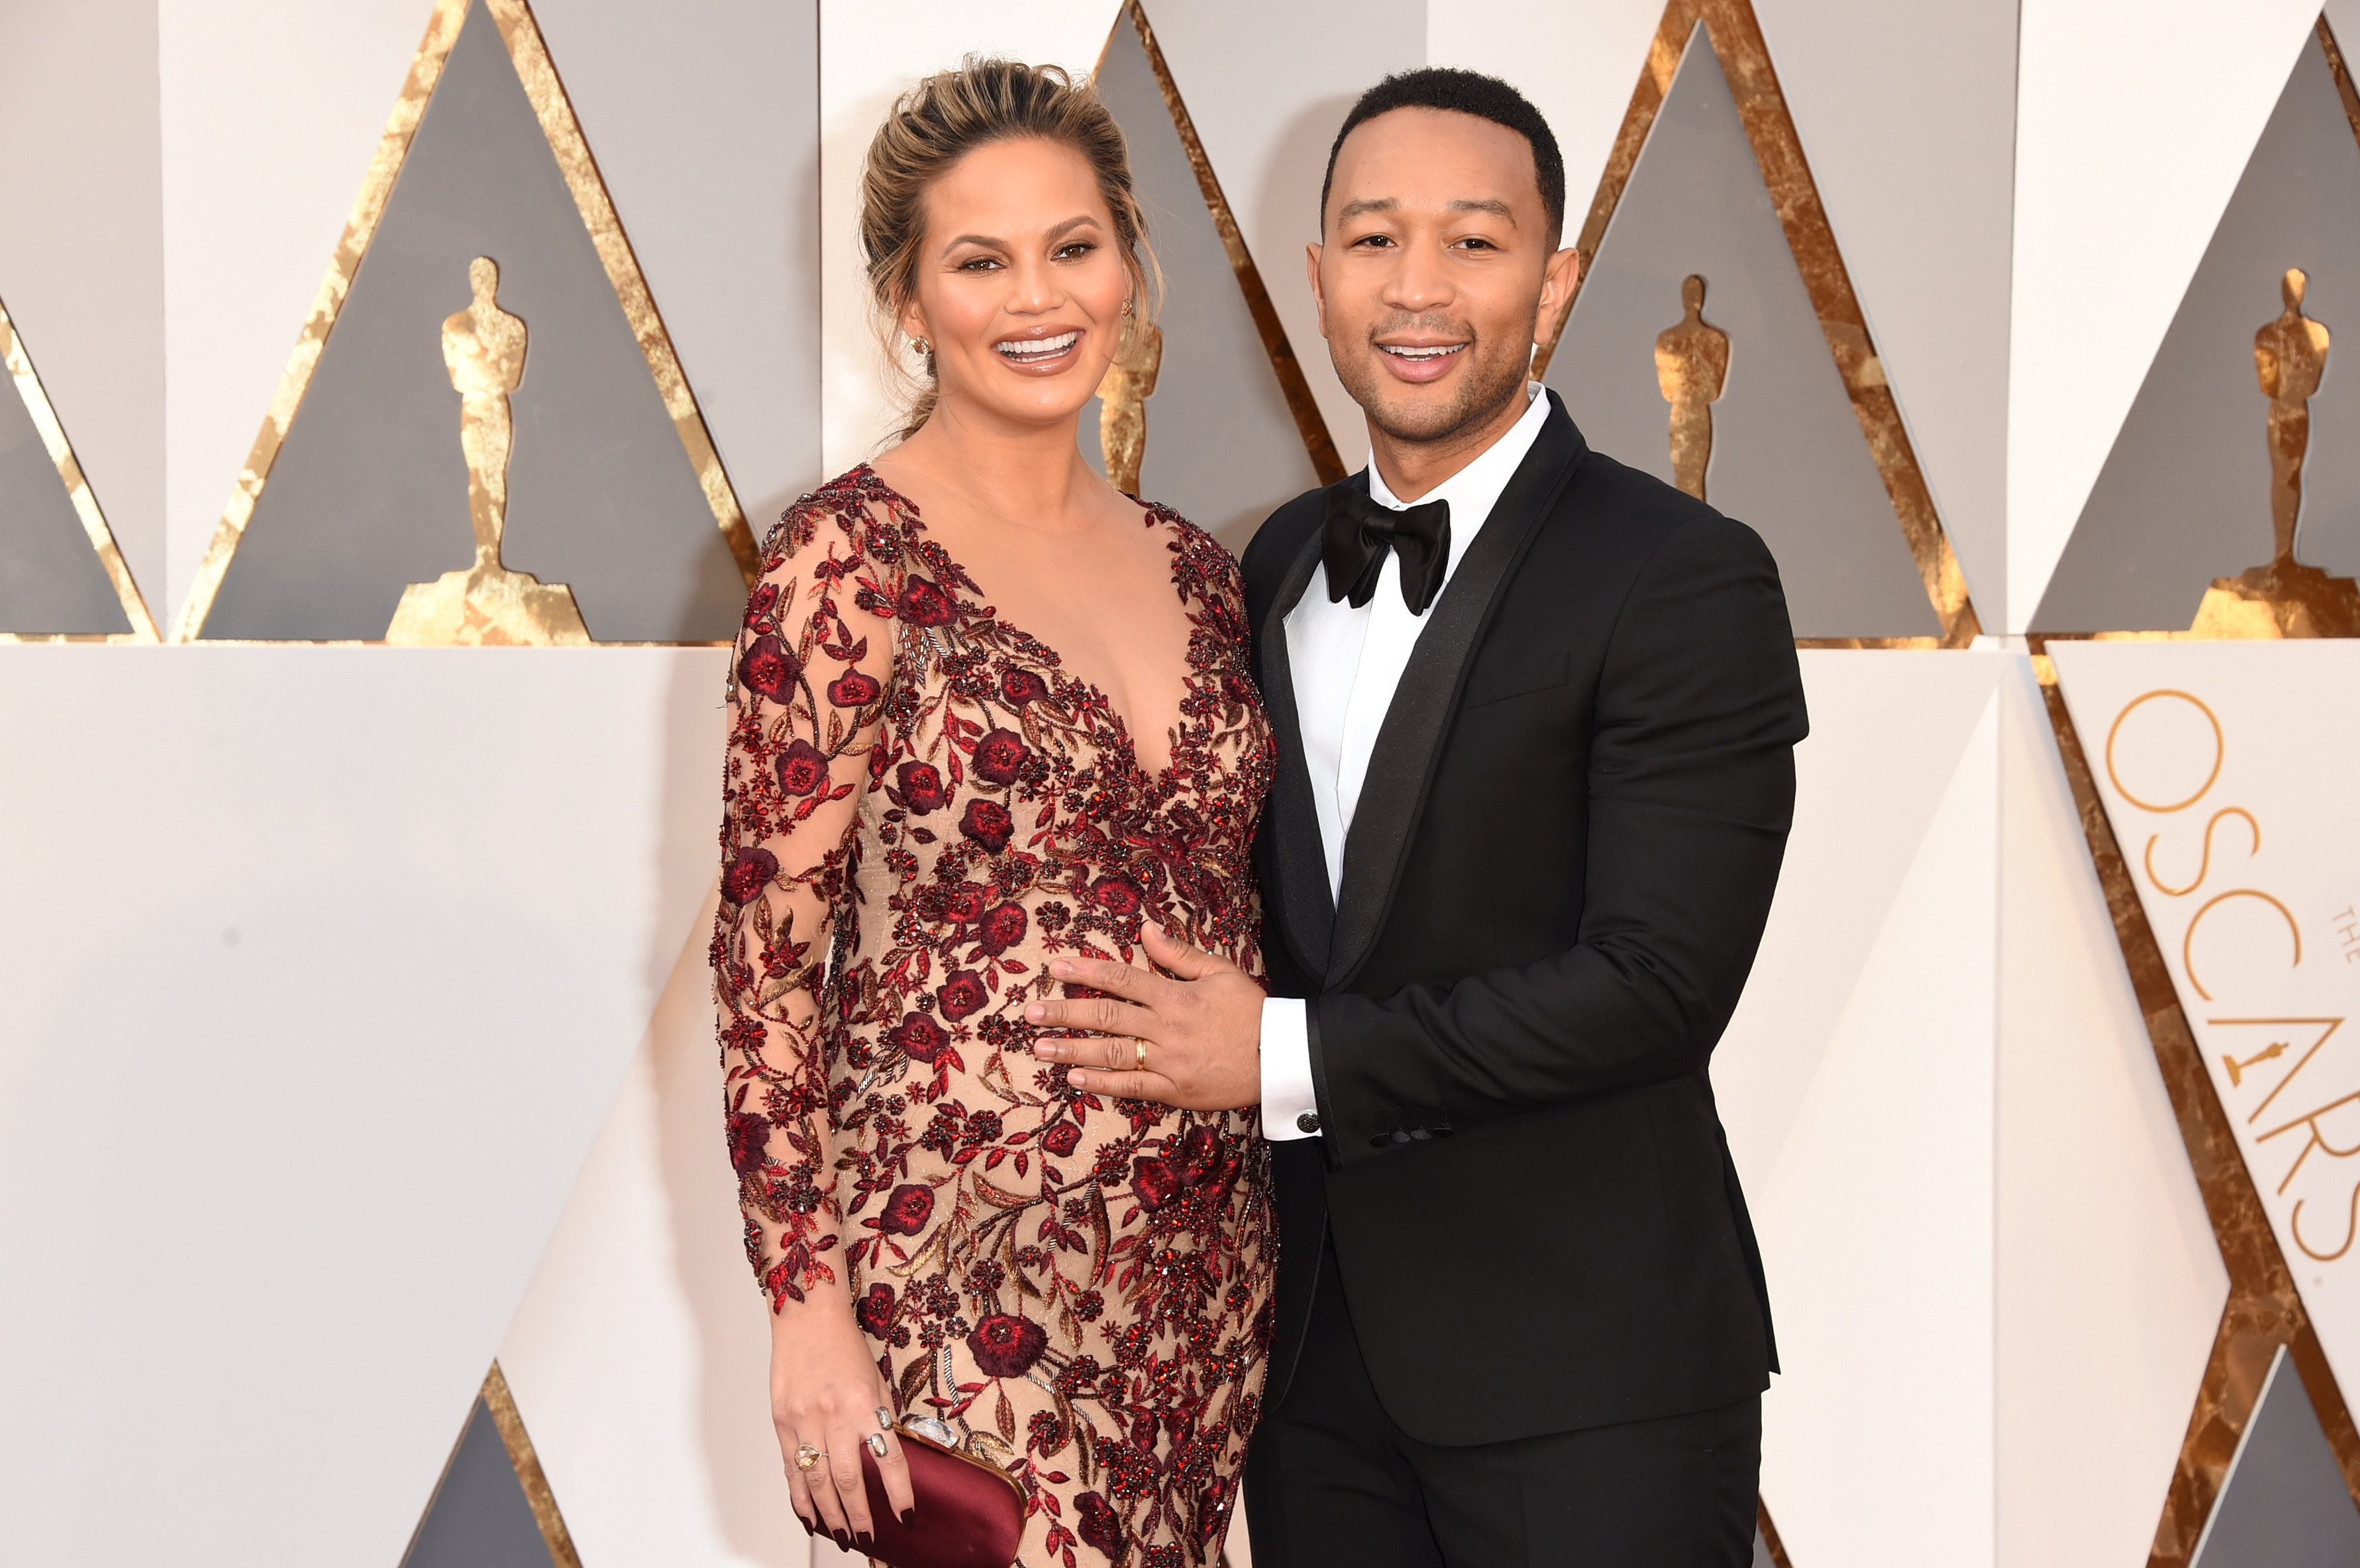 """Model Chrissy Teigen and """"Ordinary People"""" singer John Legend attend the 88th Academy Awards in 2016 in Hollywood City, California. 